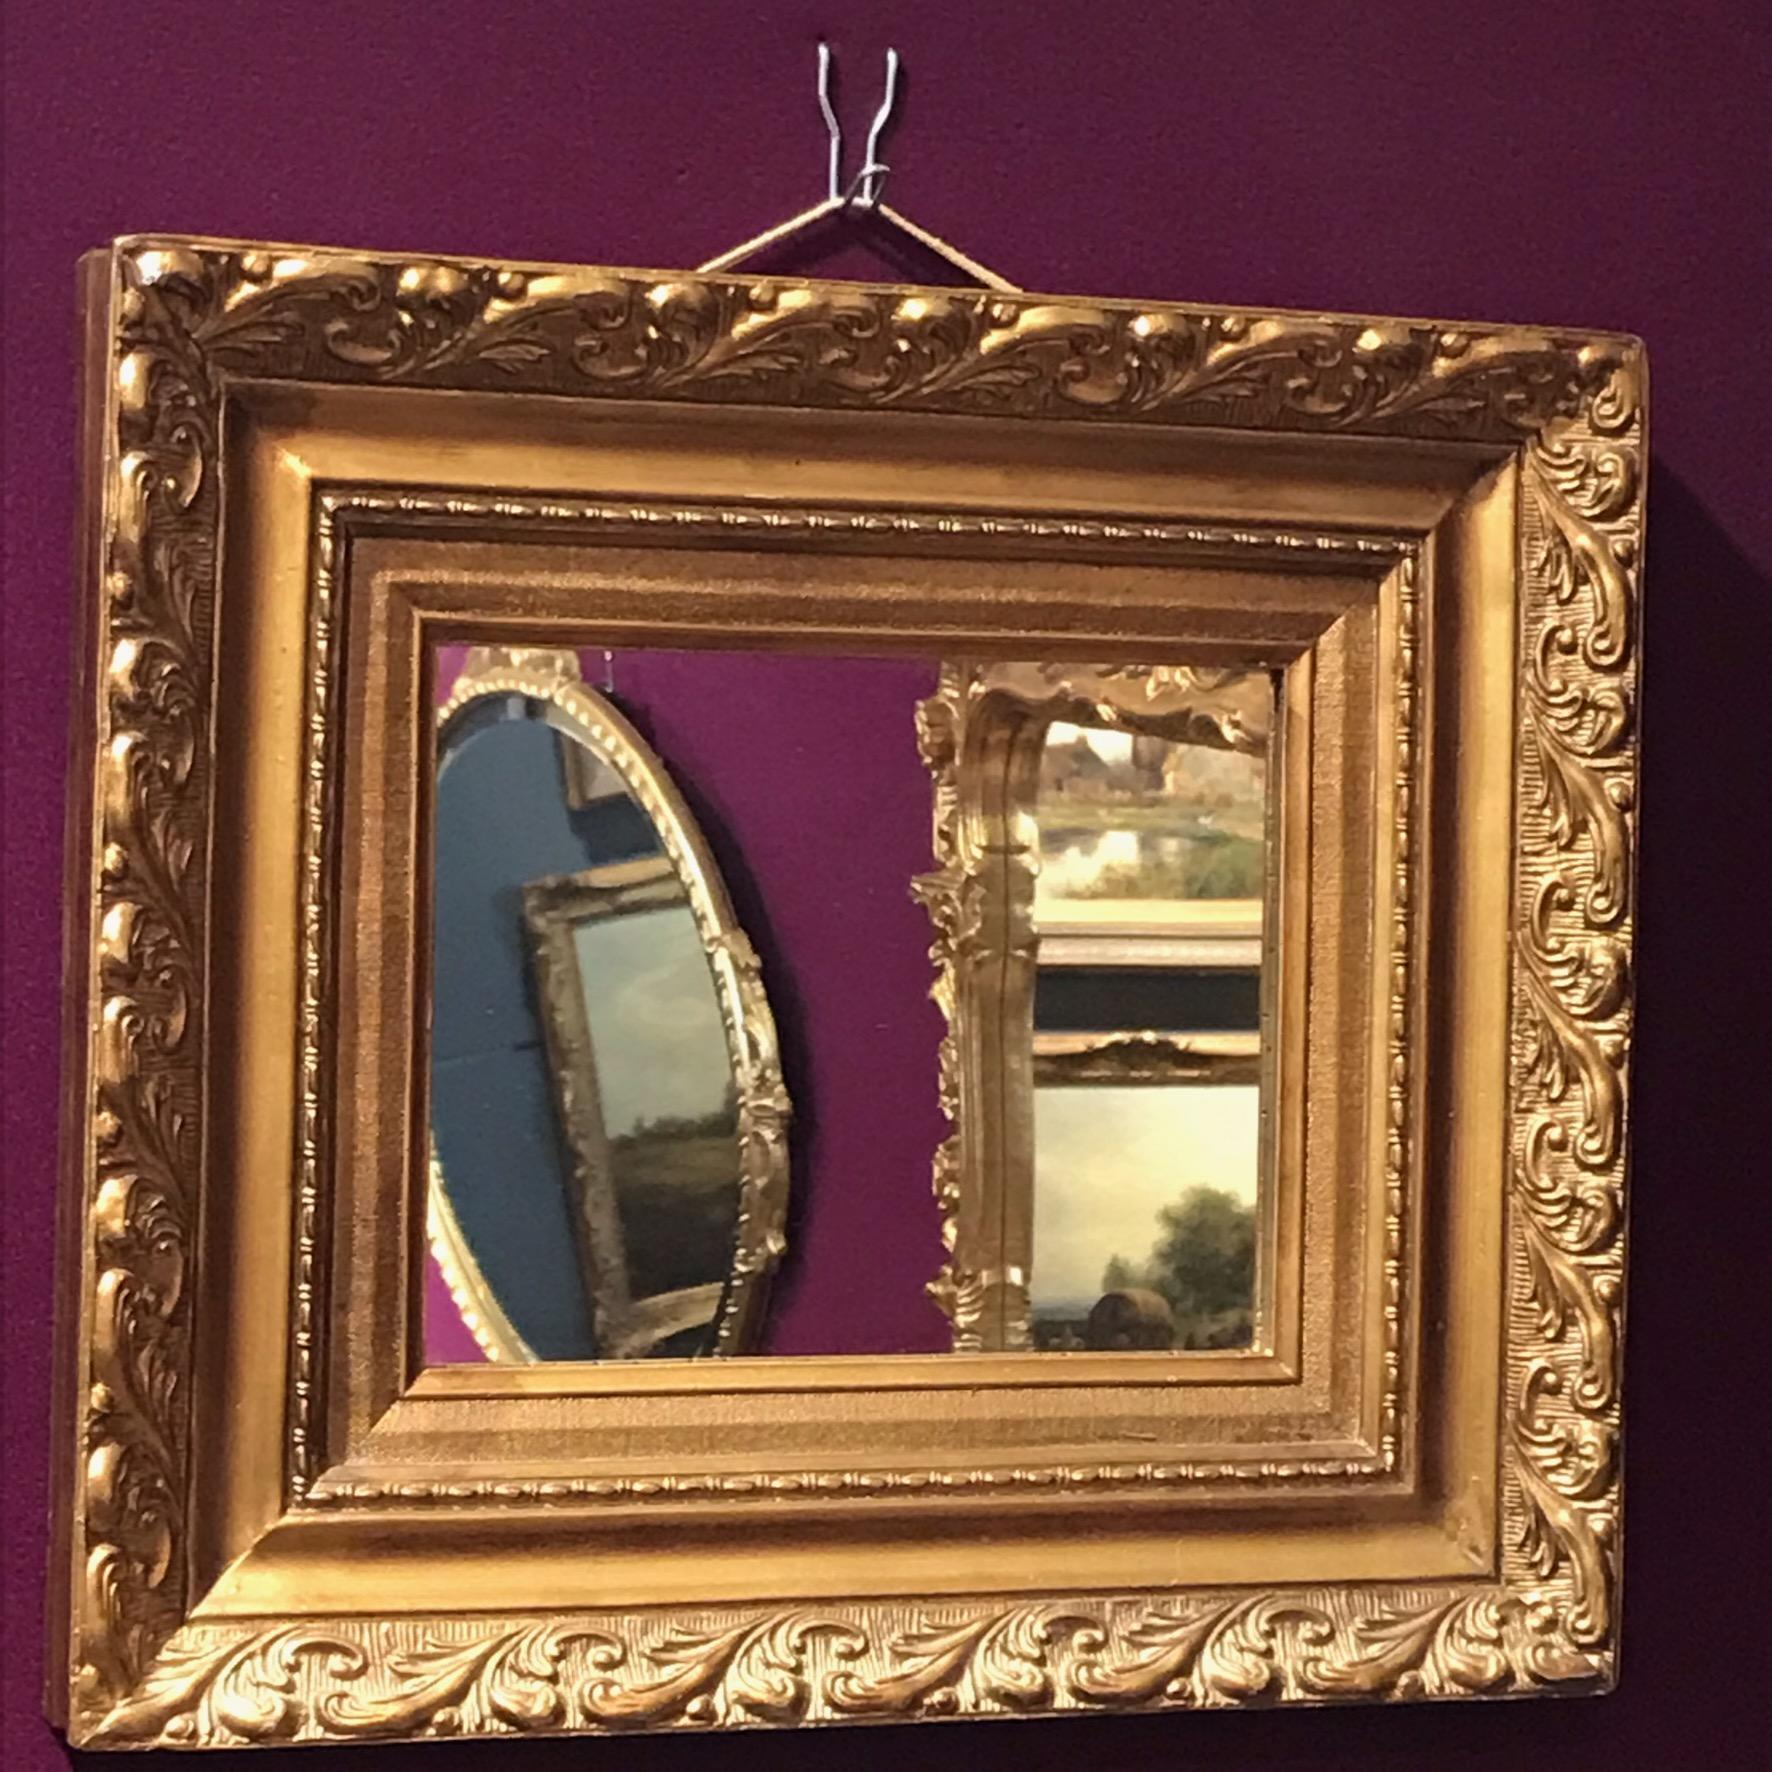 Decorative Gilt Framed Wall Mirror Antique Mirrors